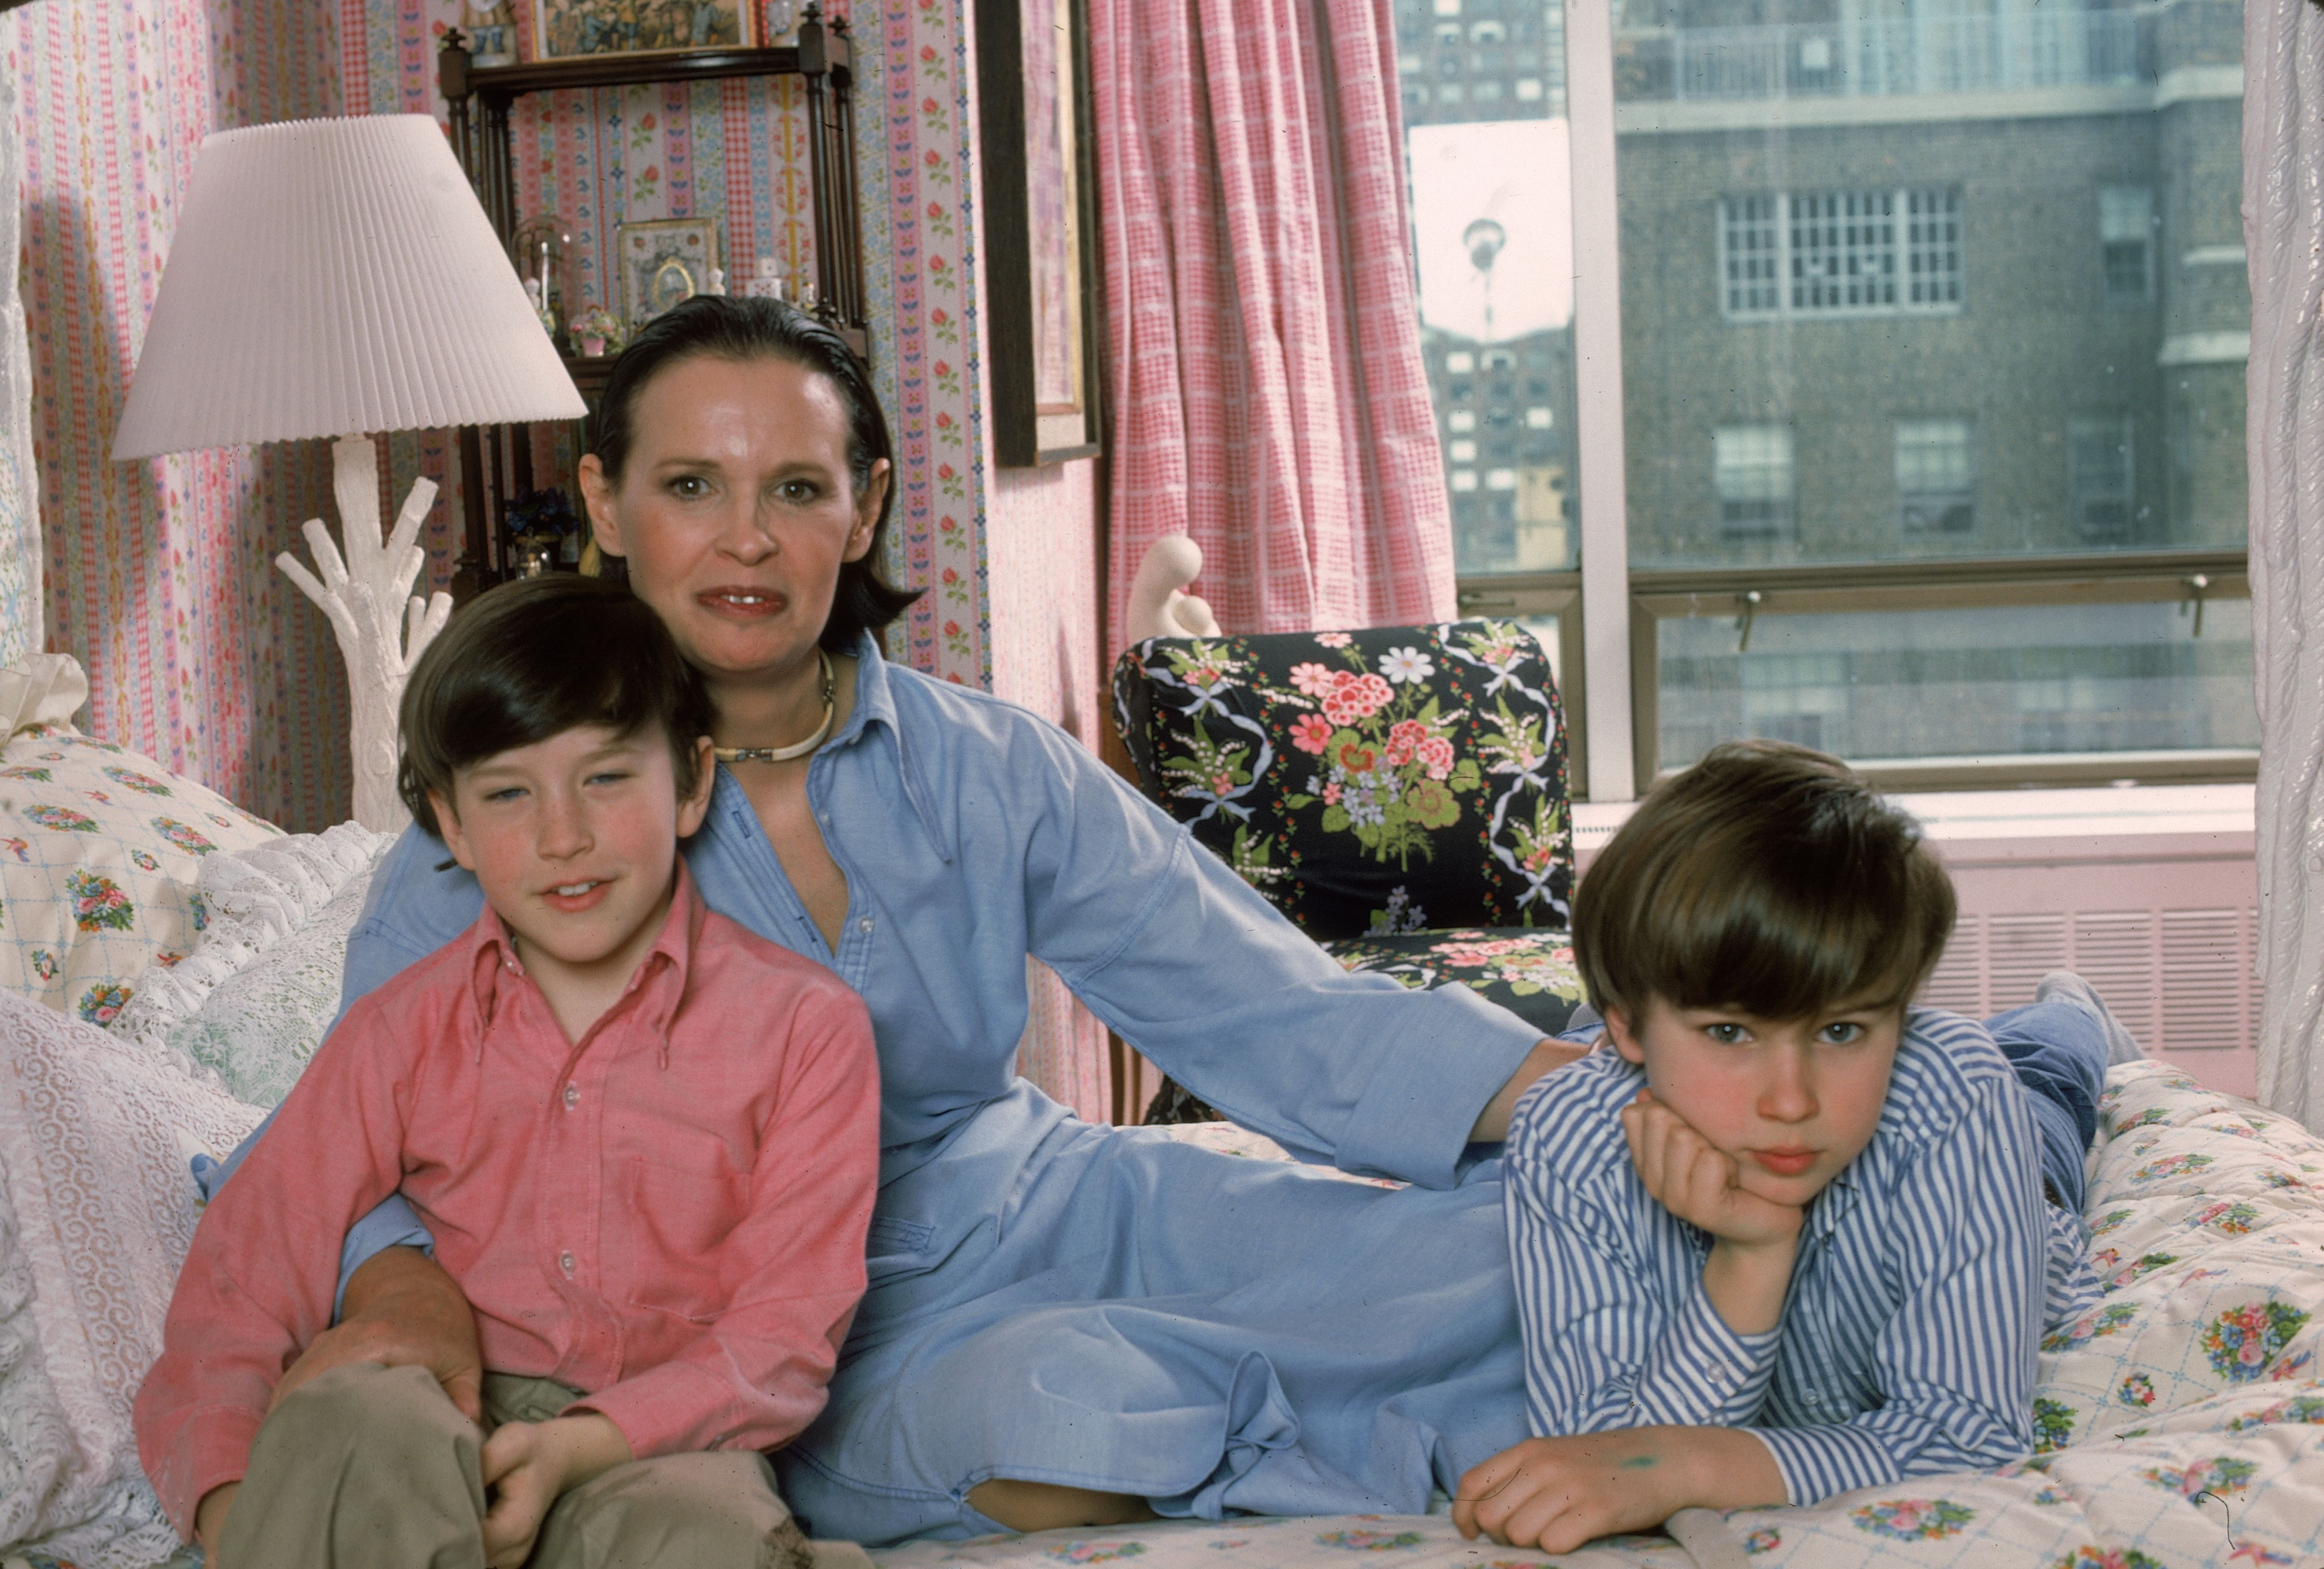 Anderson Cooper and Carter Vanderbilt Cooper with their mother Gloria Vanderbilt on Gloria's bed in their NY apartment, 1976 | Photo: Getty Images